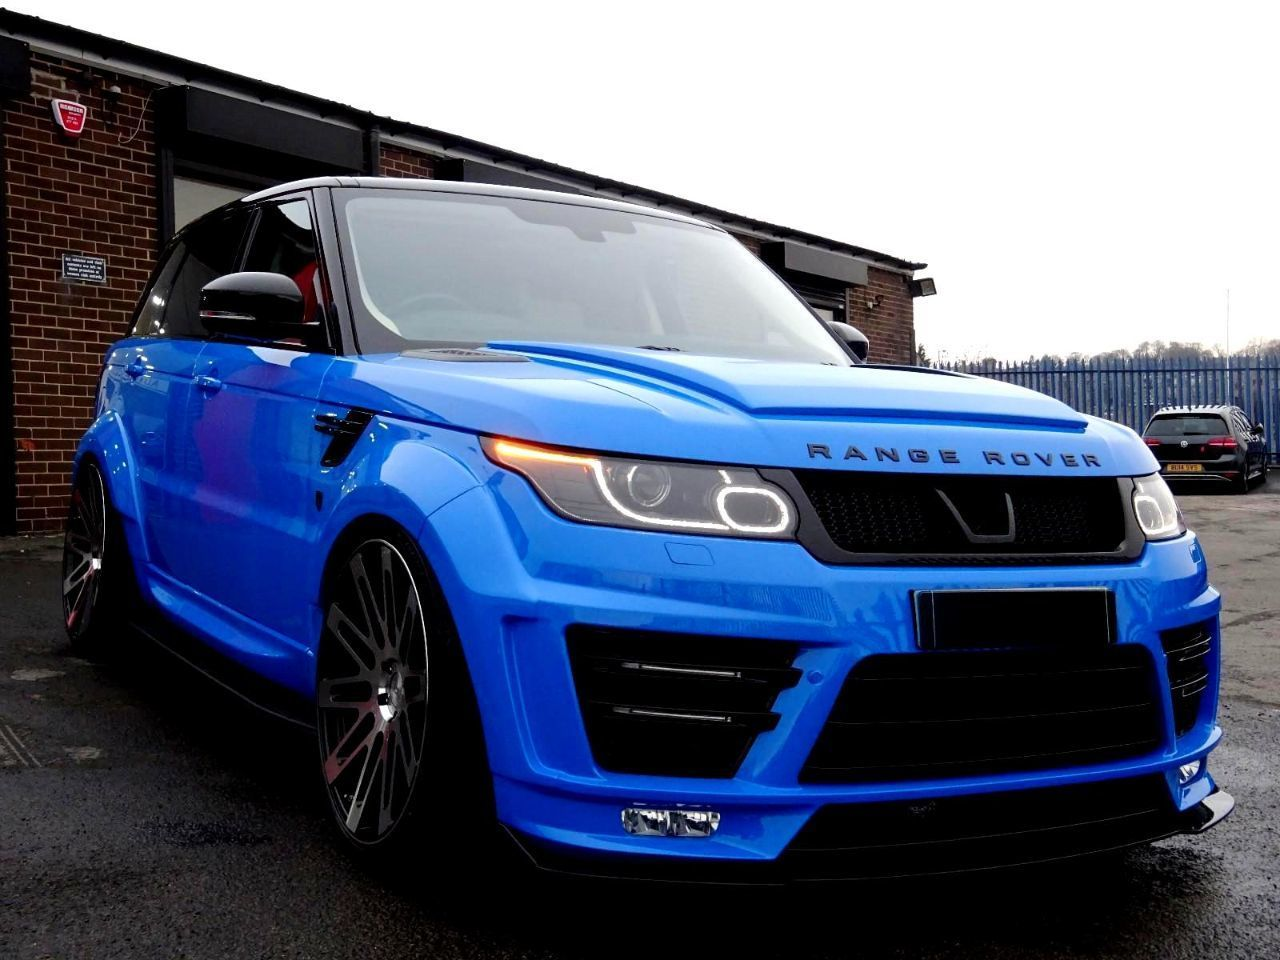 Land Rover Range Rover Sport 3.0 HSE SDV6 BI-TURBO VZR-600 EDITION WIDE  BODY LATEST VOODOO BLUE WITH EXTRAS Four Wheel Drive Diesel Voodoo Blue 3881b6b905